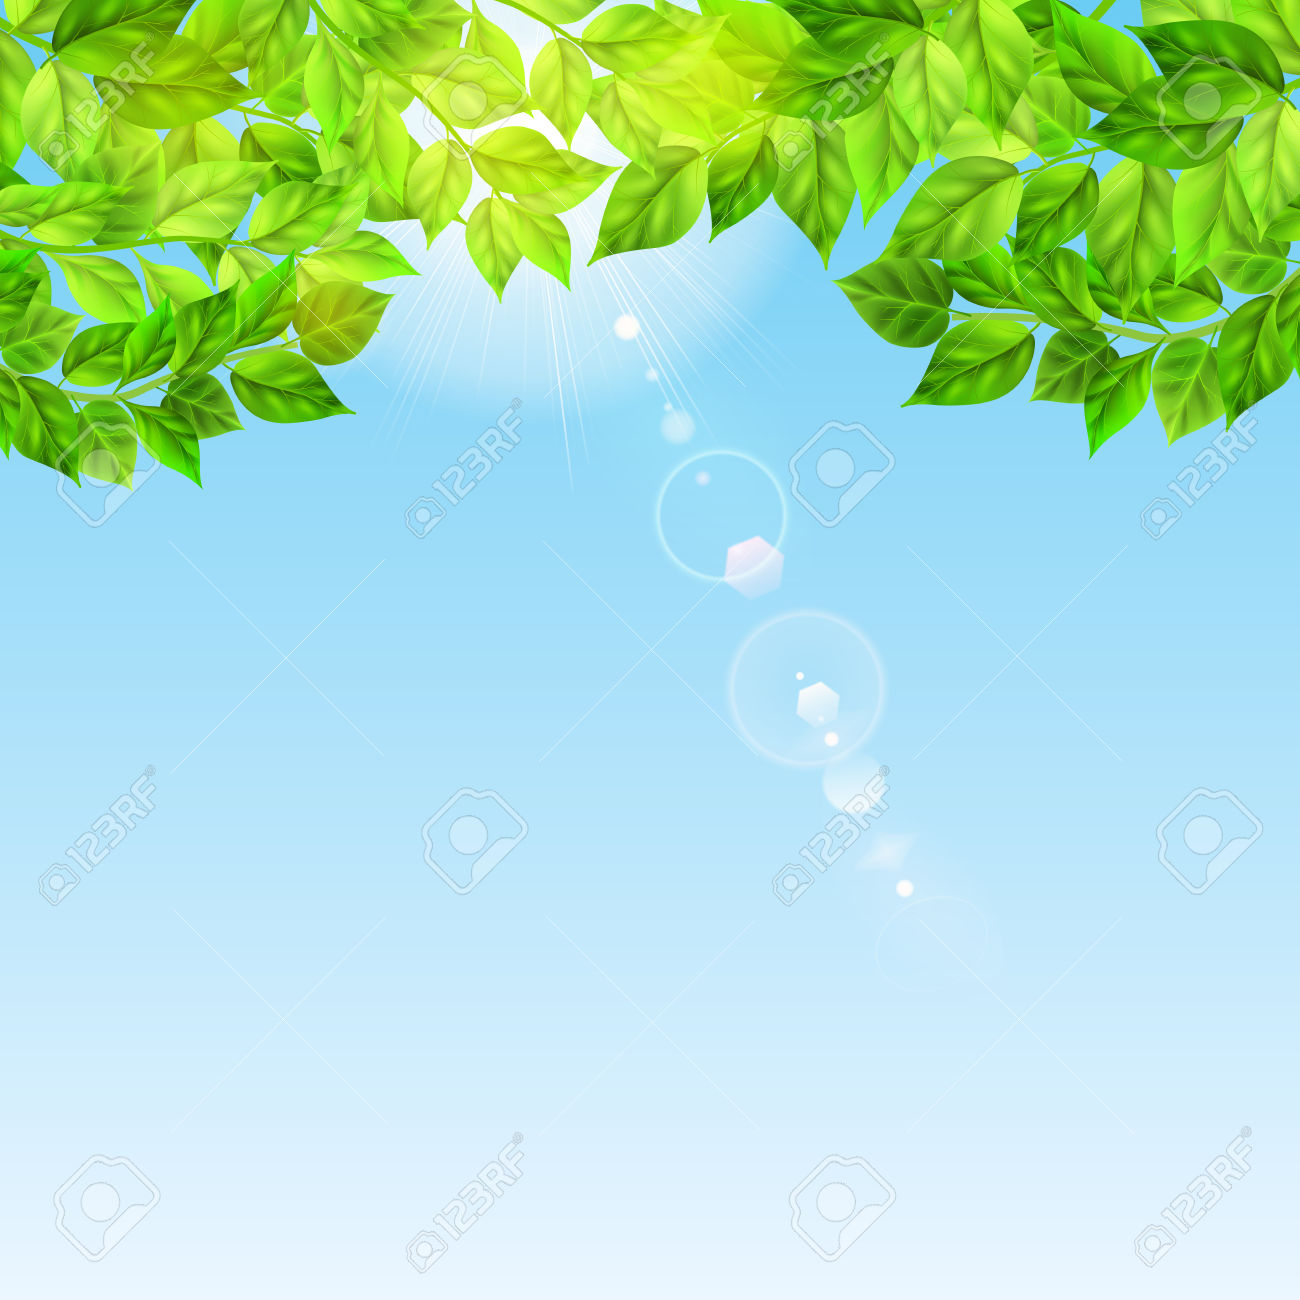 Background With Blue Sky And Sun Luminous Through Green Leaves.